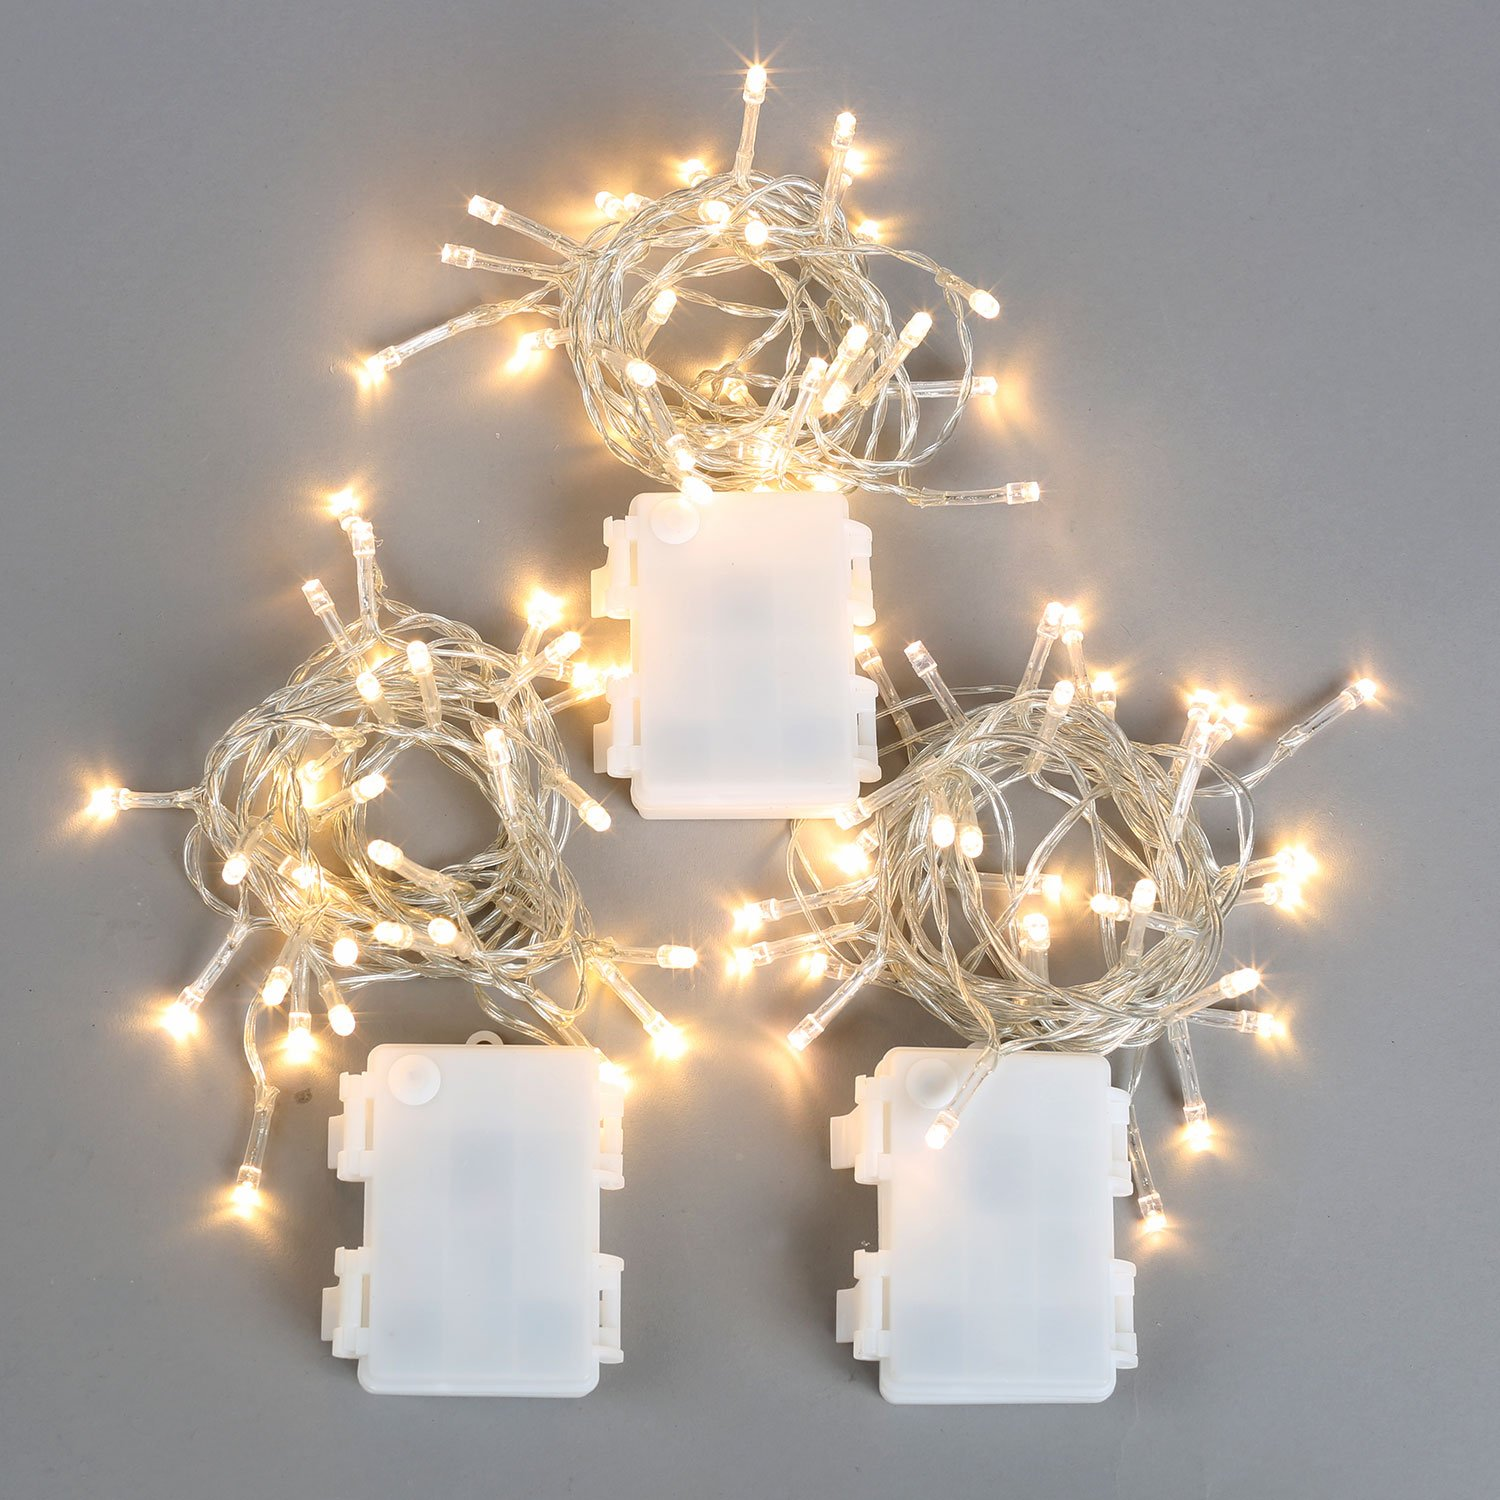 3 Pack Battery String Lights, 30 Warm White LEDs, 11 Ft. Strands, Batteries Included, Value Set by LampLust (Image #5)